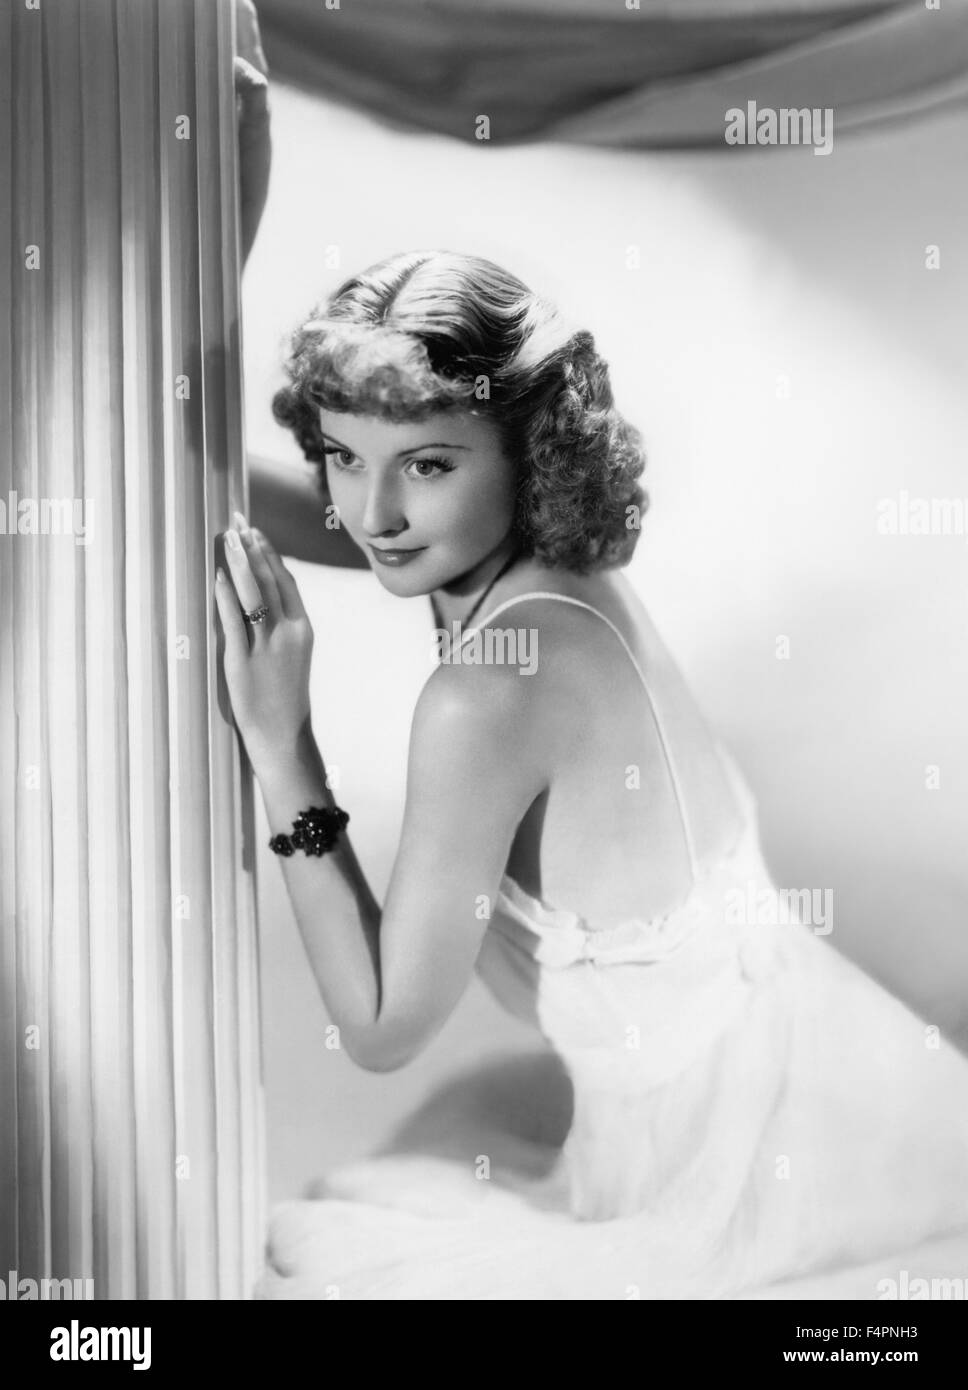 Barbara Stanwyck in the 30's - Stock Image